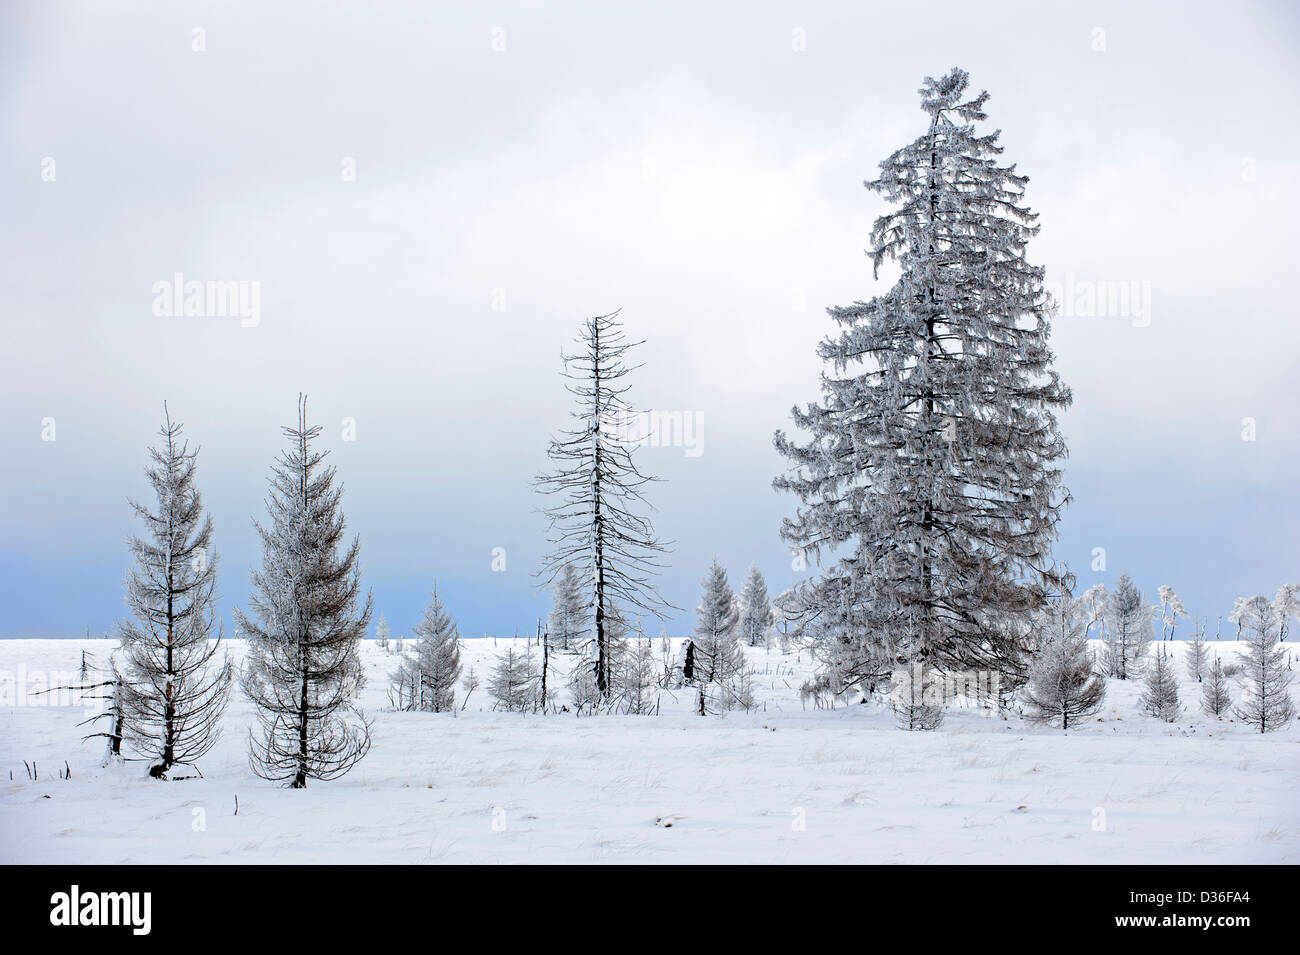 Burnt spruce trees in frozen moorland at Noir Flohay, High Fens / Hautes Fagnes in the snow in winter, Belgian Ardennes, - Stock Image